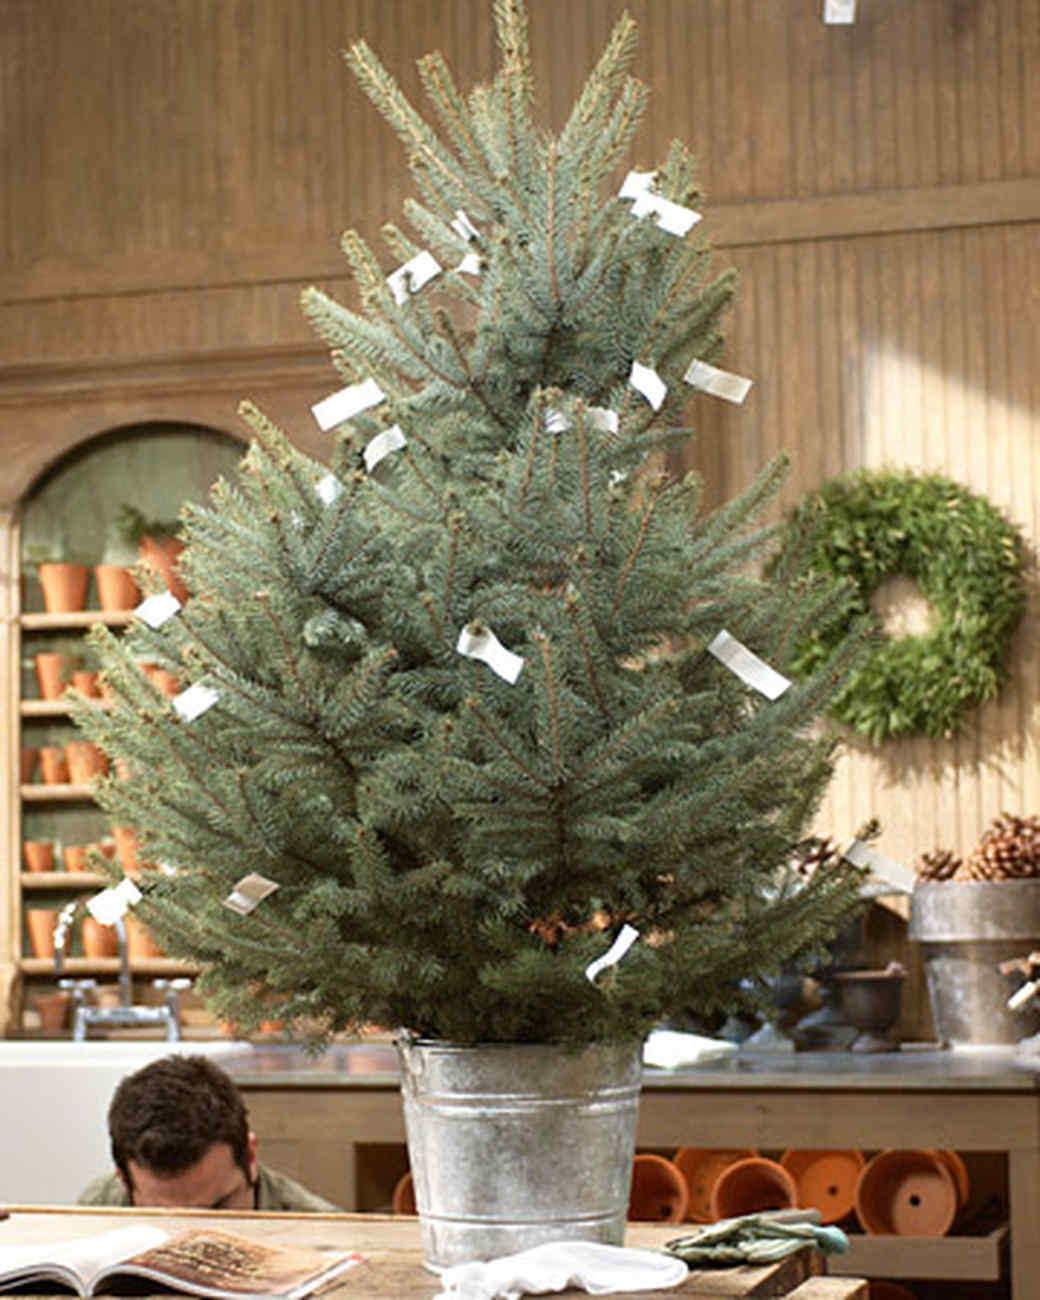 Shaping and Decorating a Tabletop Tree with Eric | Martha ...